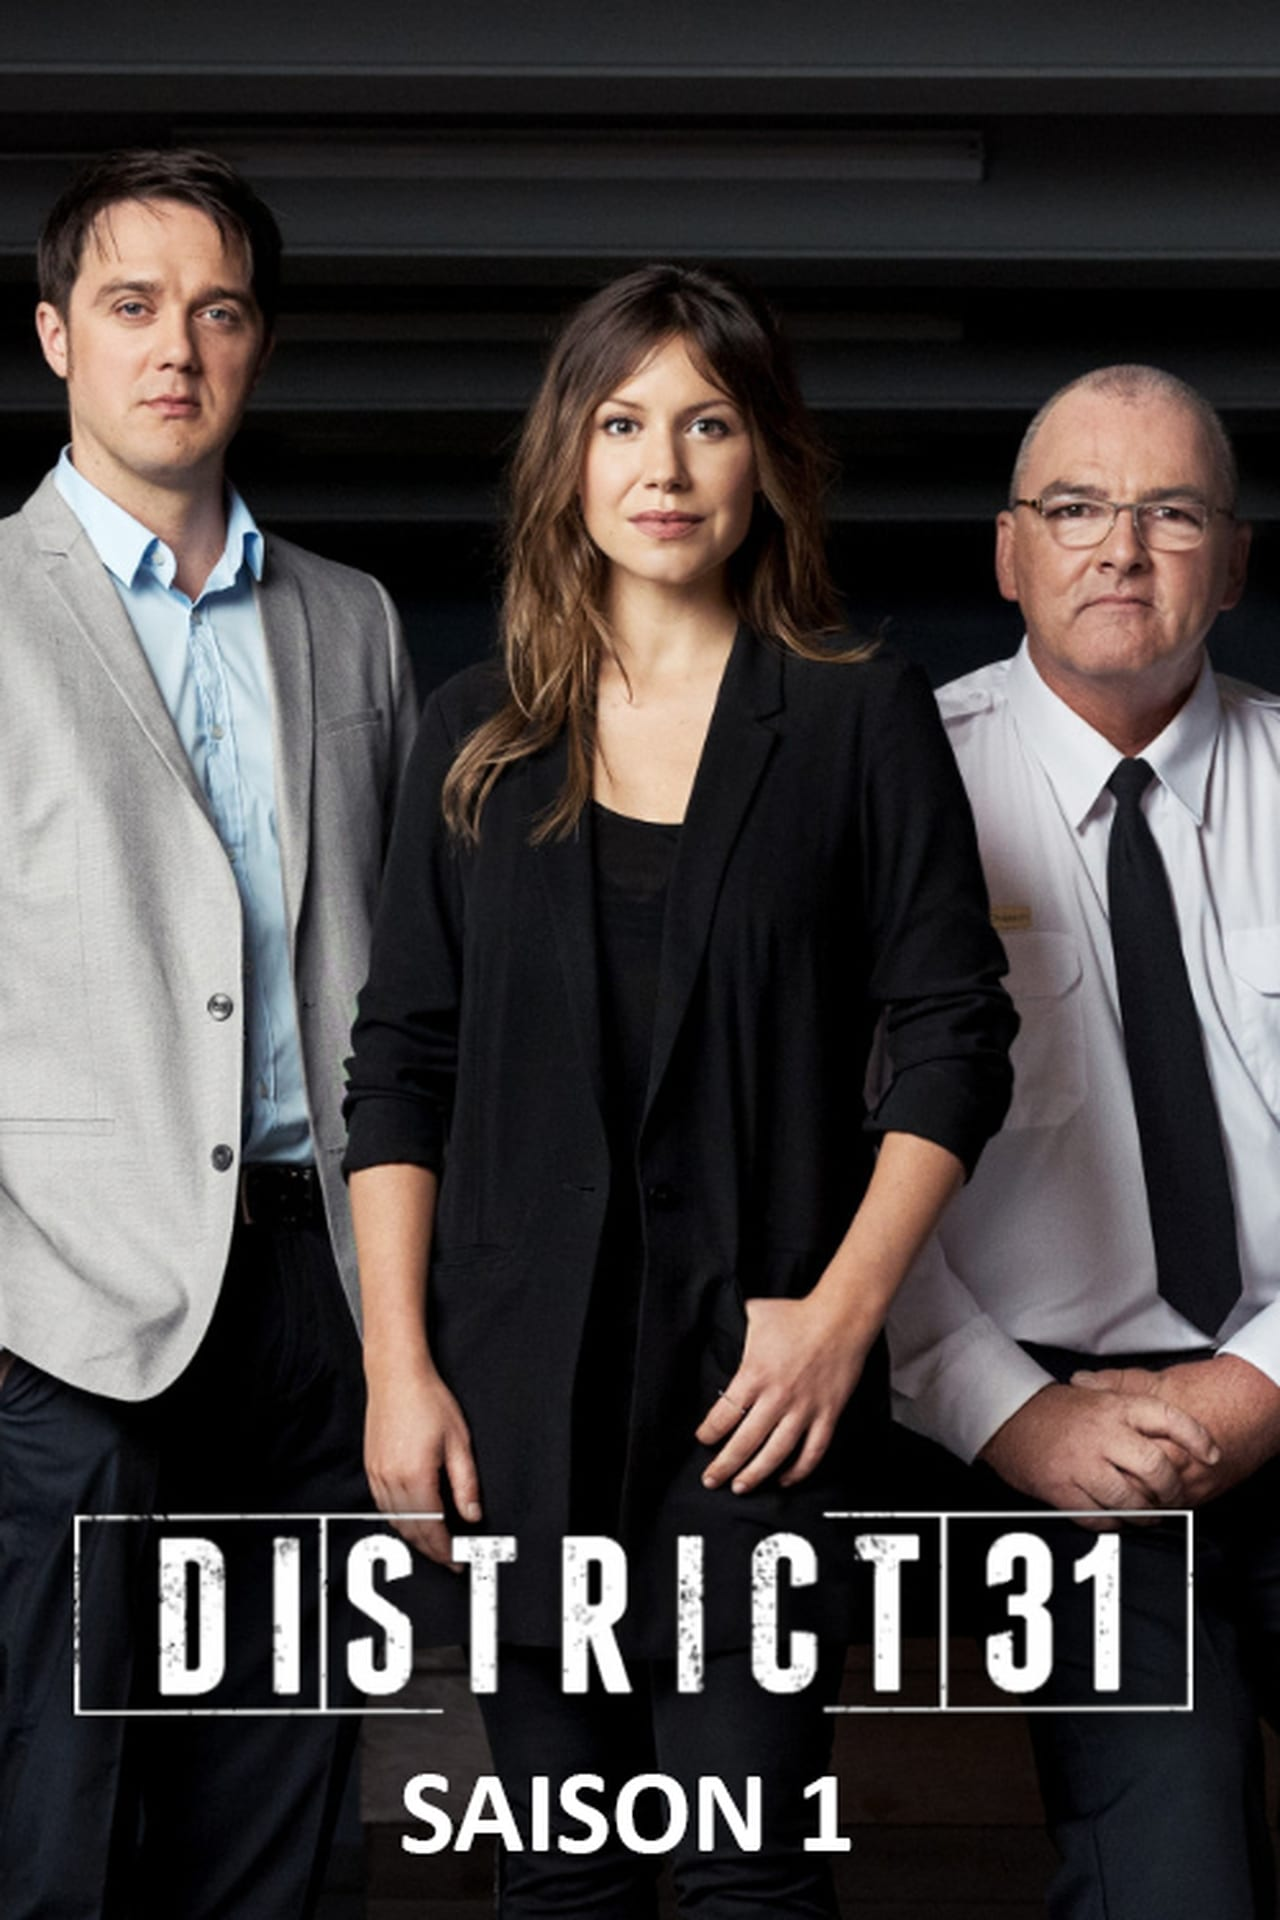 Putlocker District 31 Season 1 (2016)